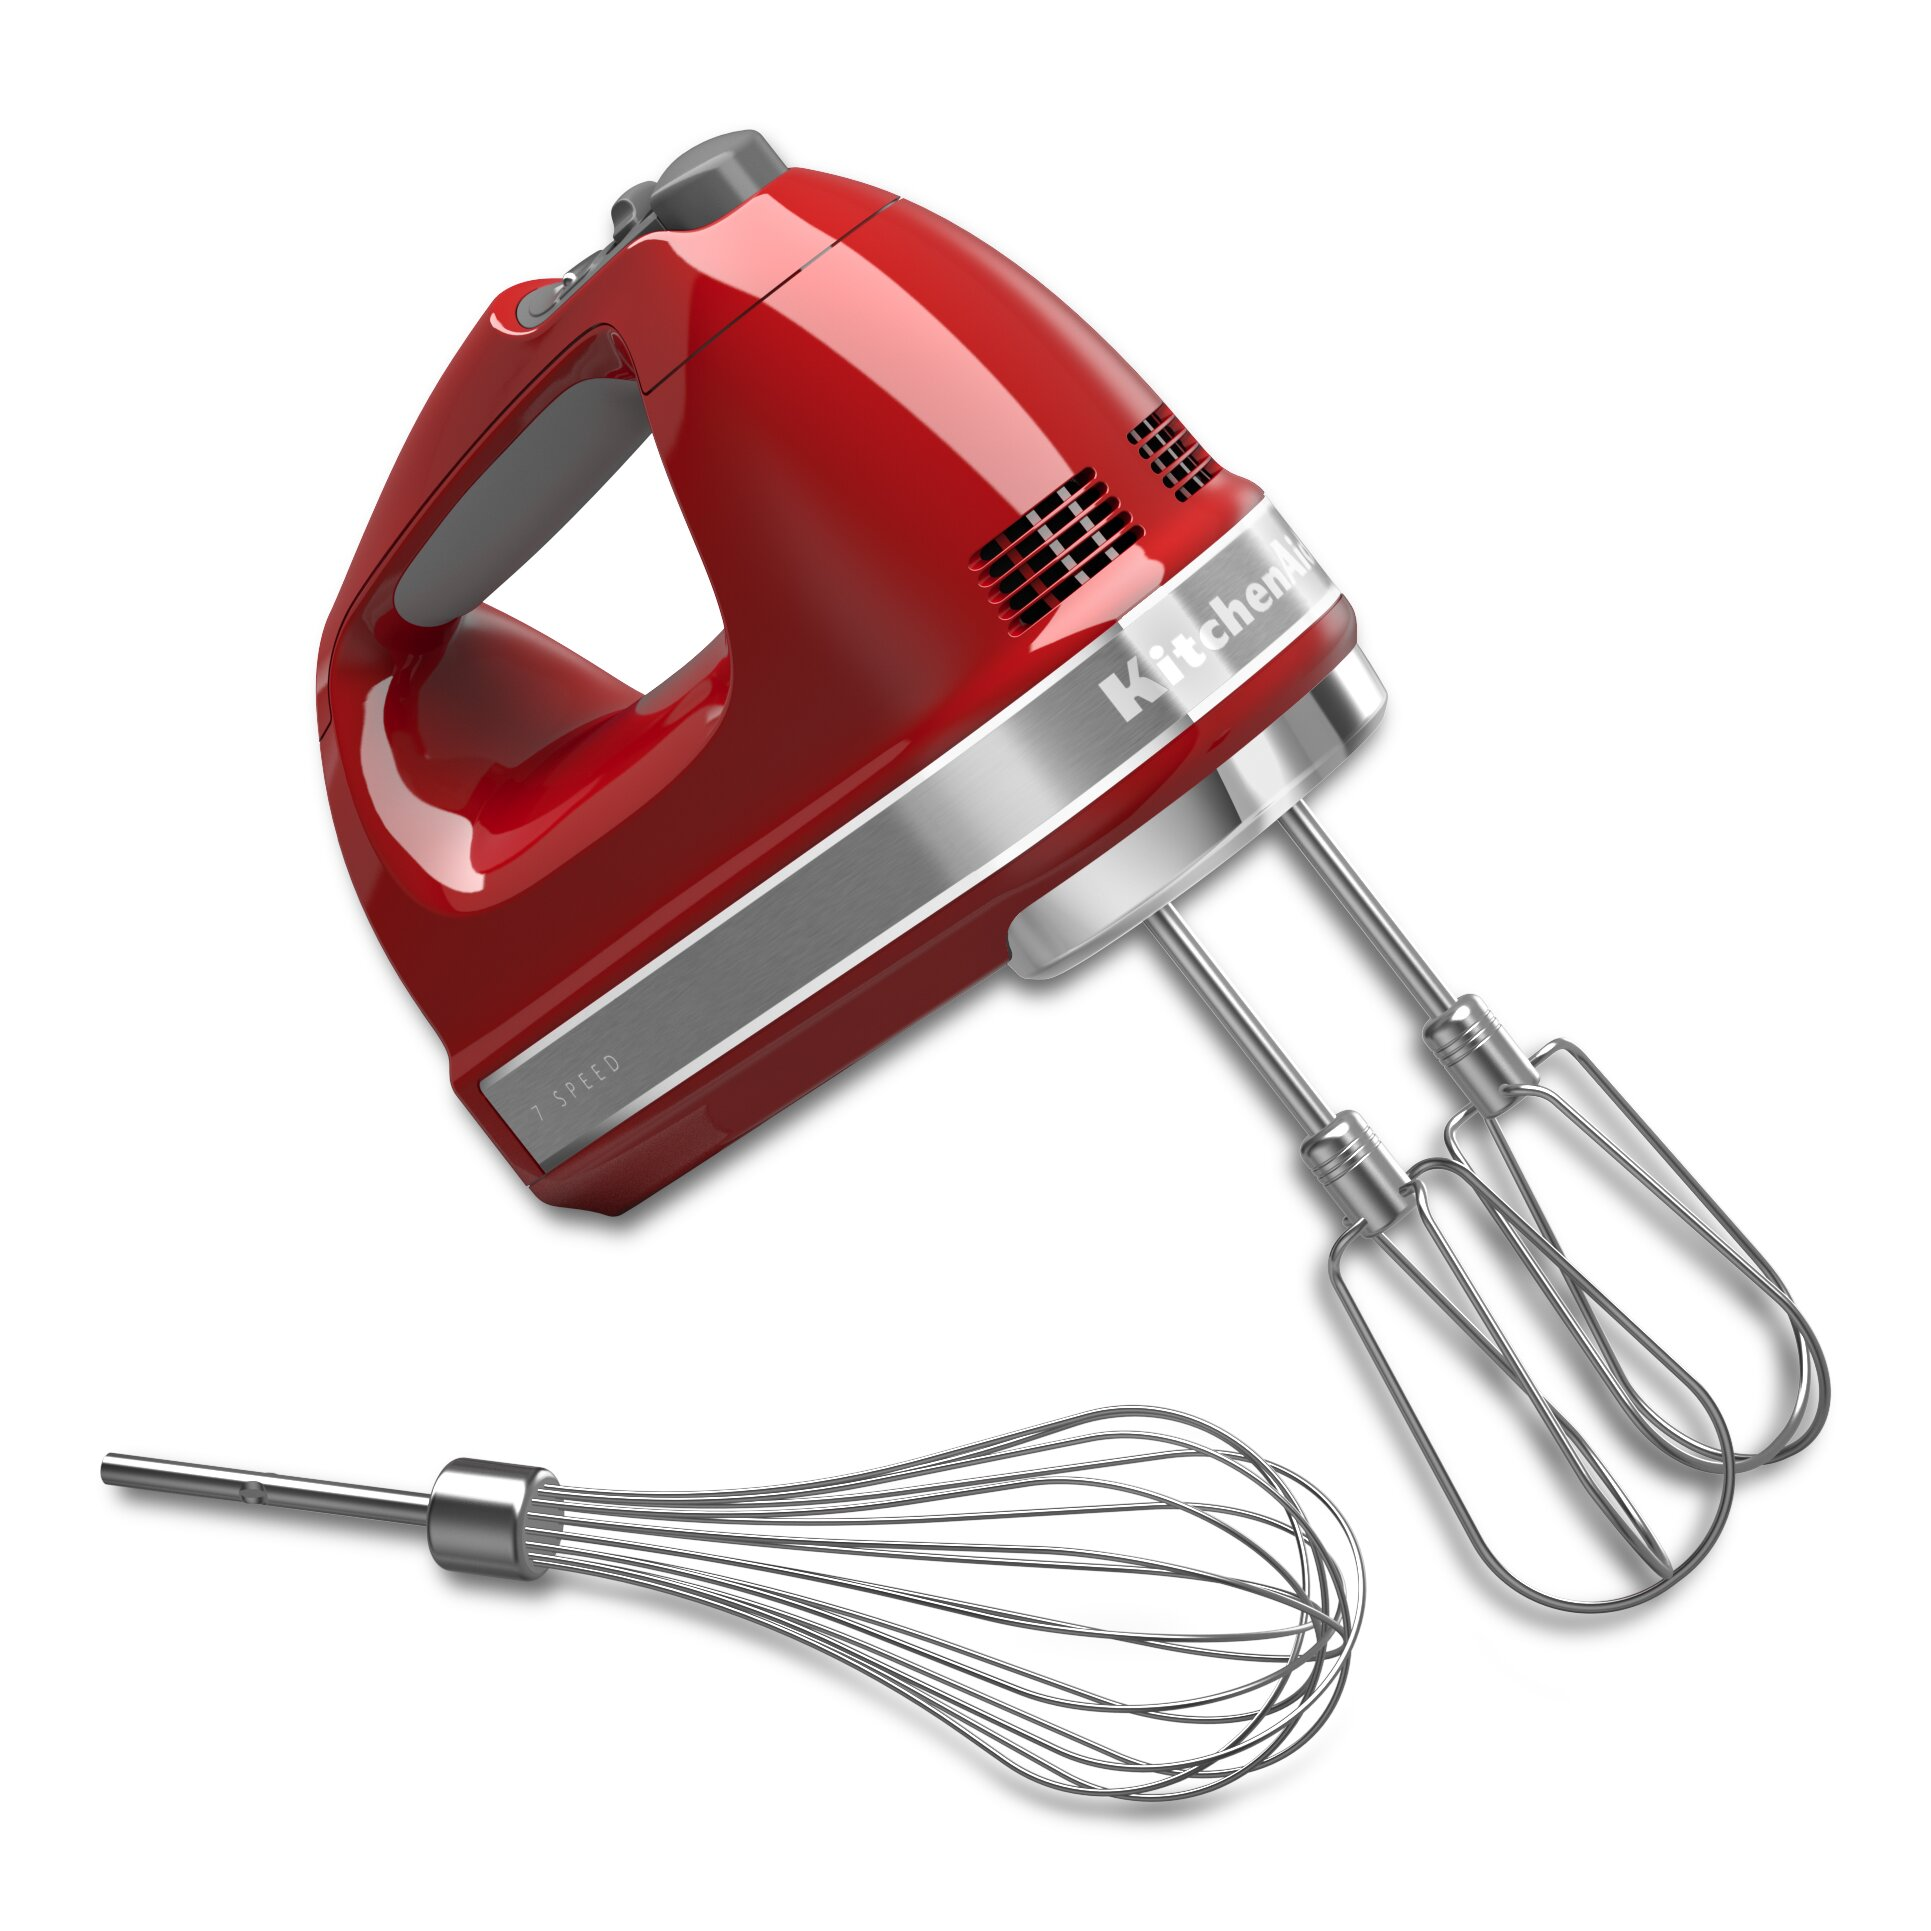 Kitchenaid 7 Speed Hand Mixer Amp Reviews Wayfair